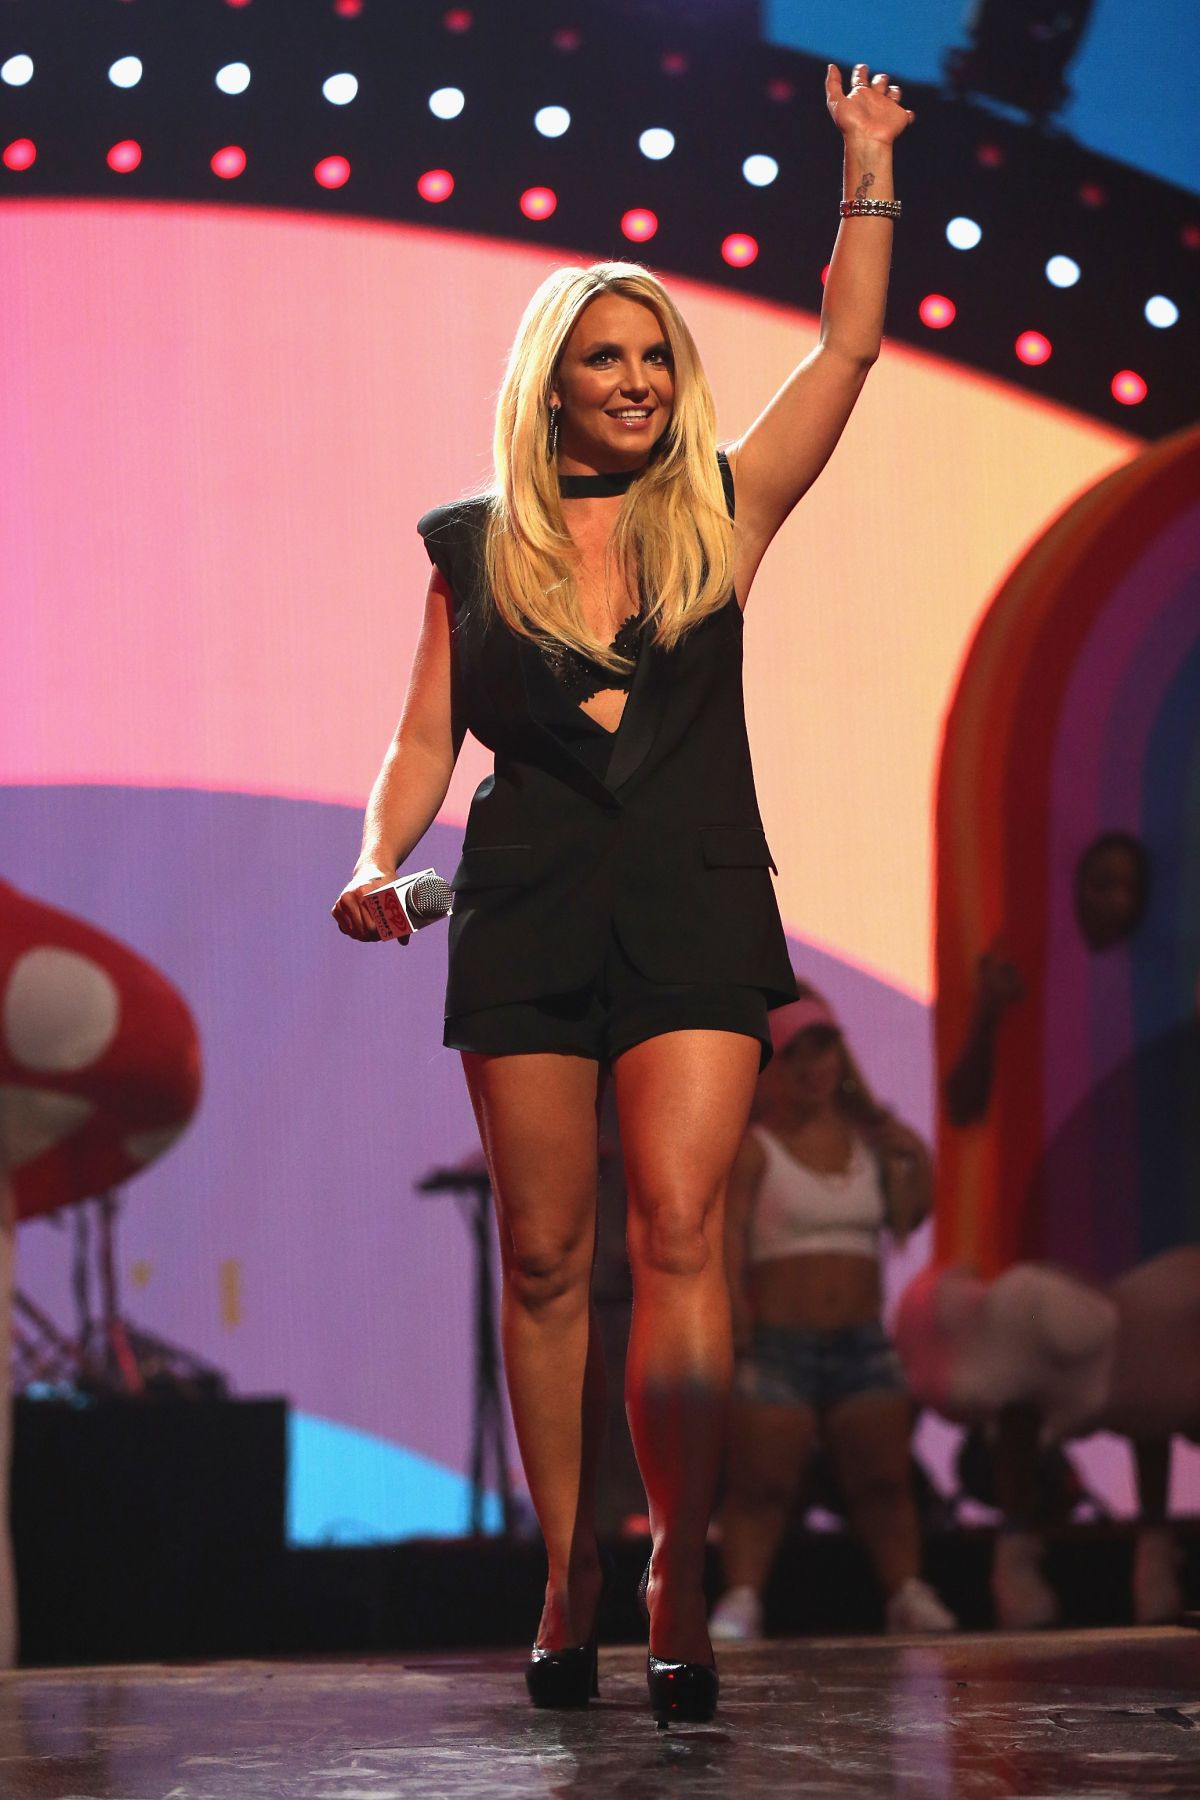 Britney Spears At iHeartRadio Music Festival In Las Vegas ... Britney Spears Las Vegas